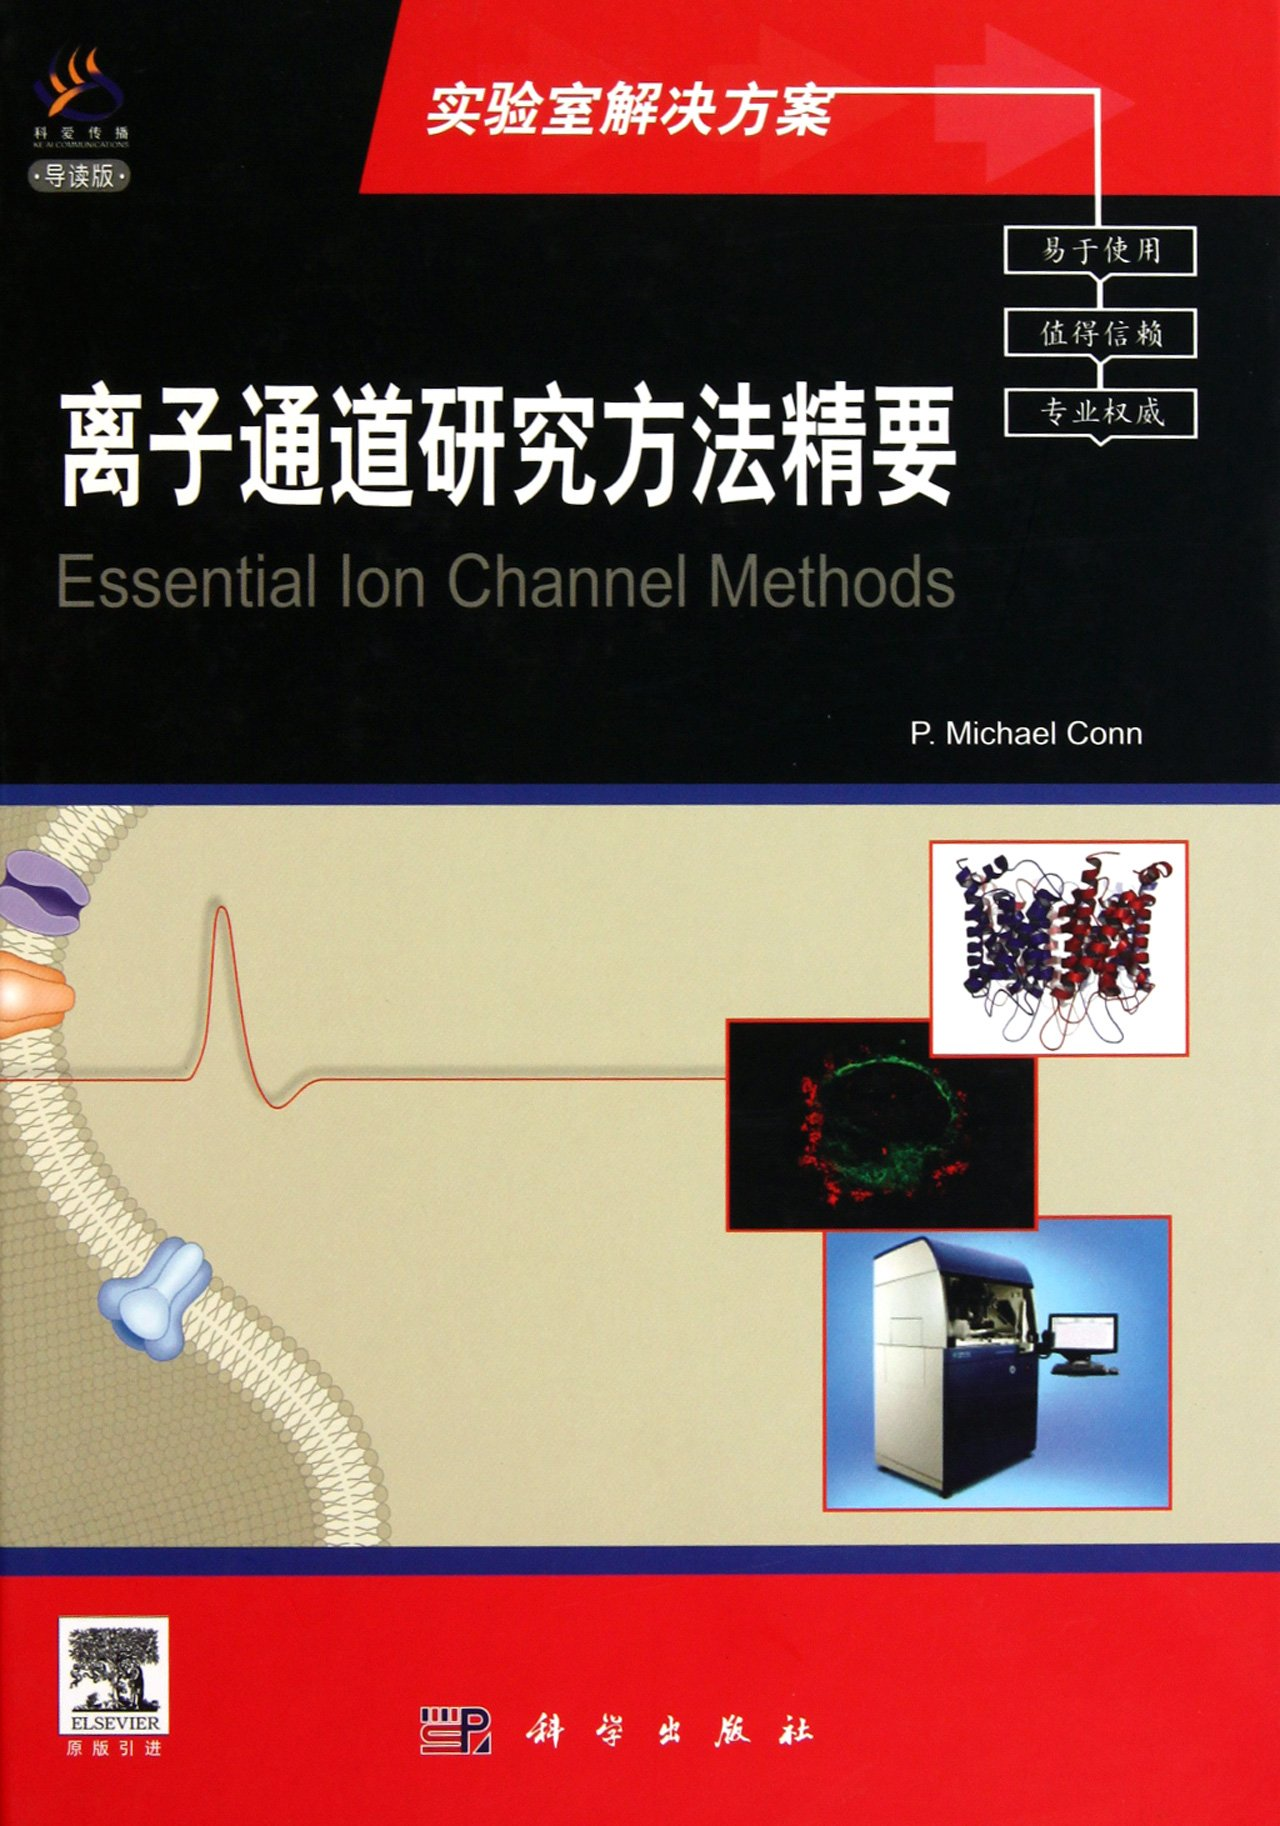 Download Essences of Methods Studying Ion(Guide and Hardcover) (Chinese Edition) PDF